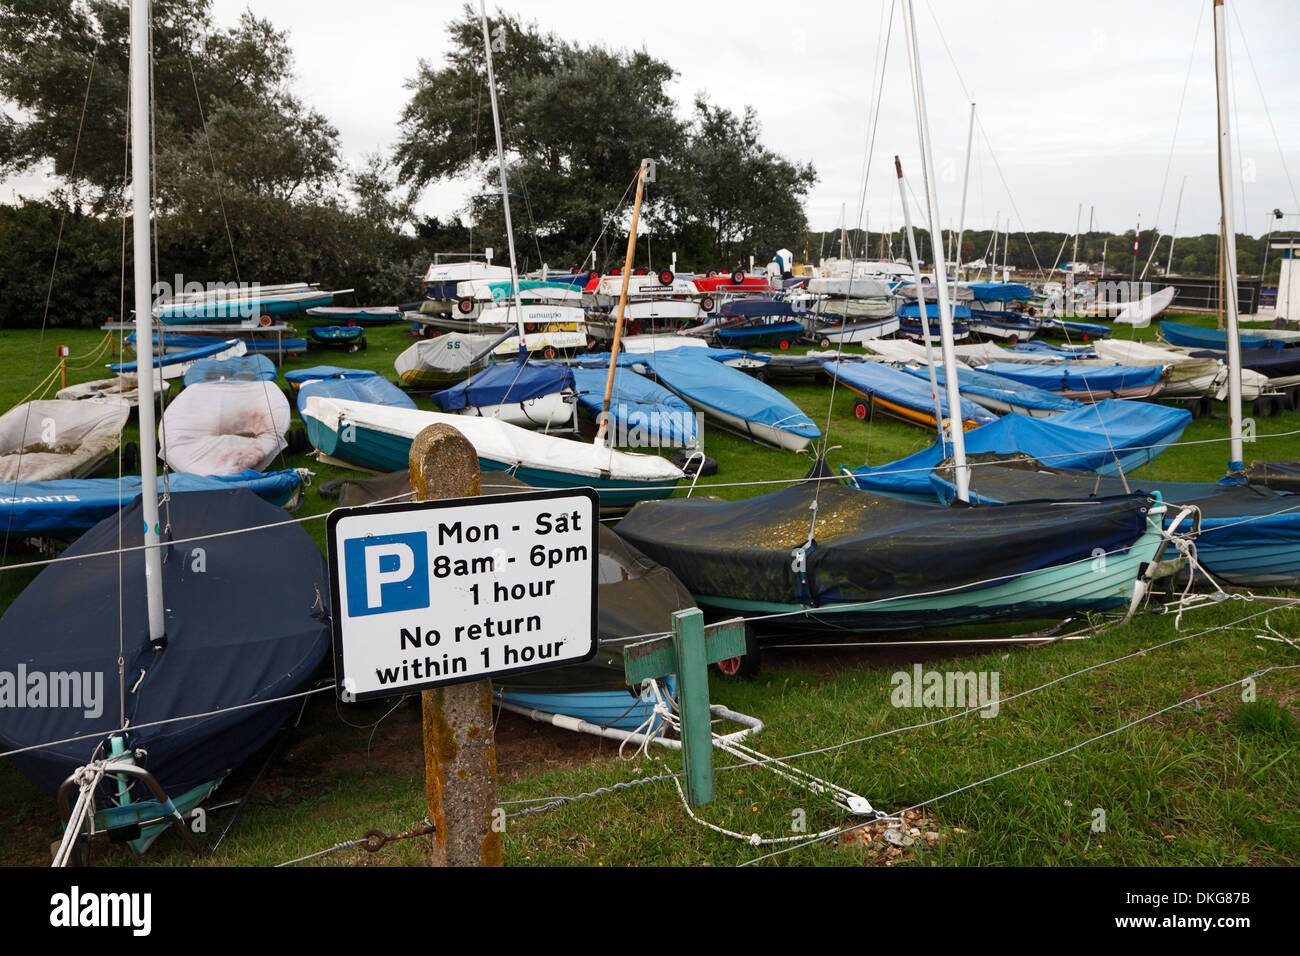 parking-sign-in-front-of-small-sail-boat